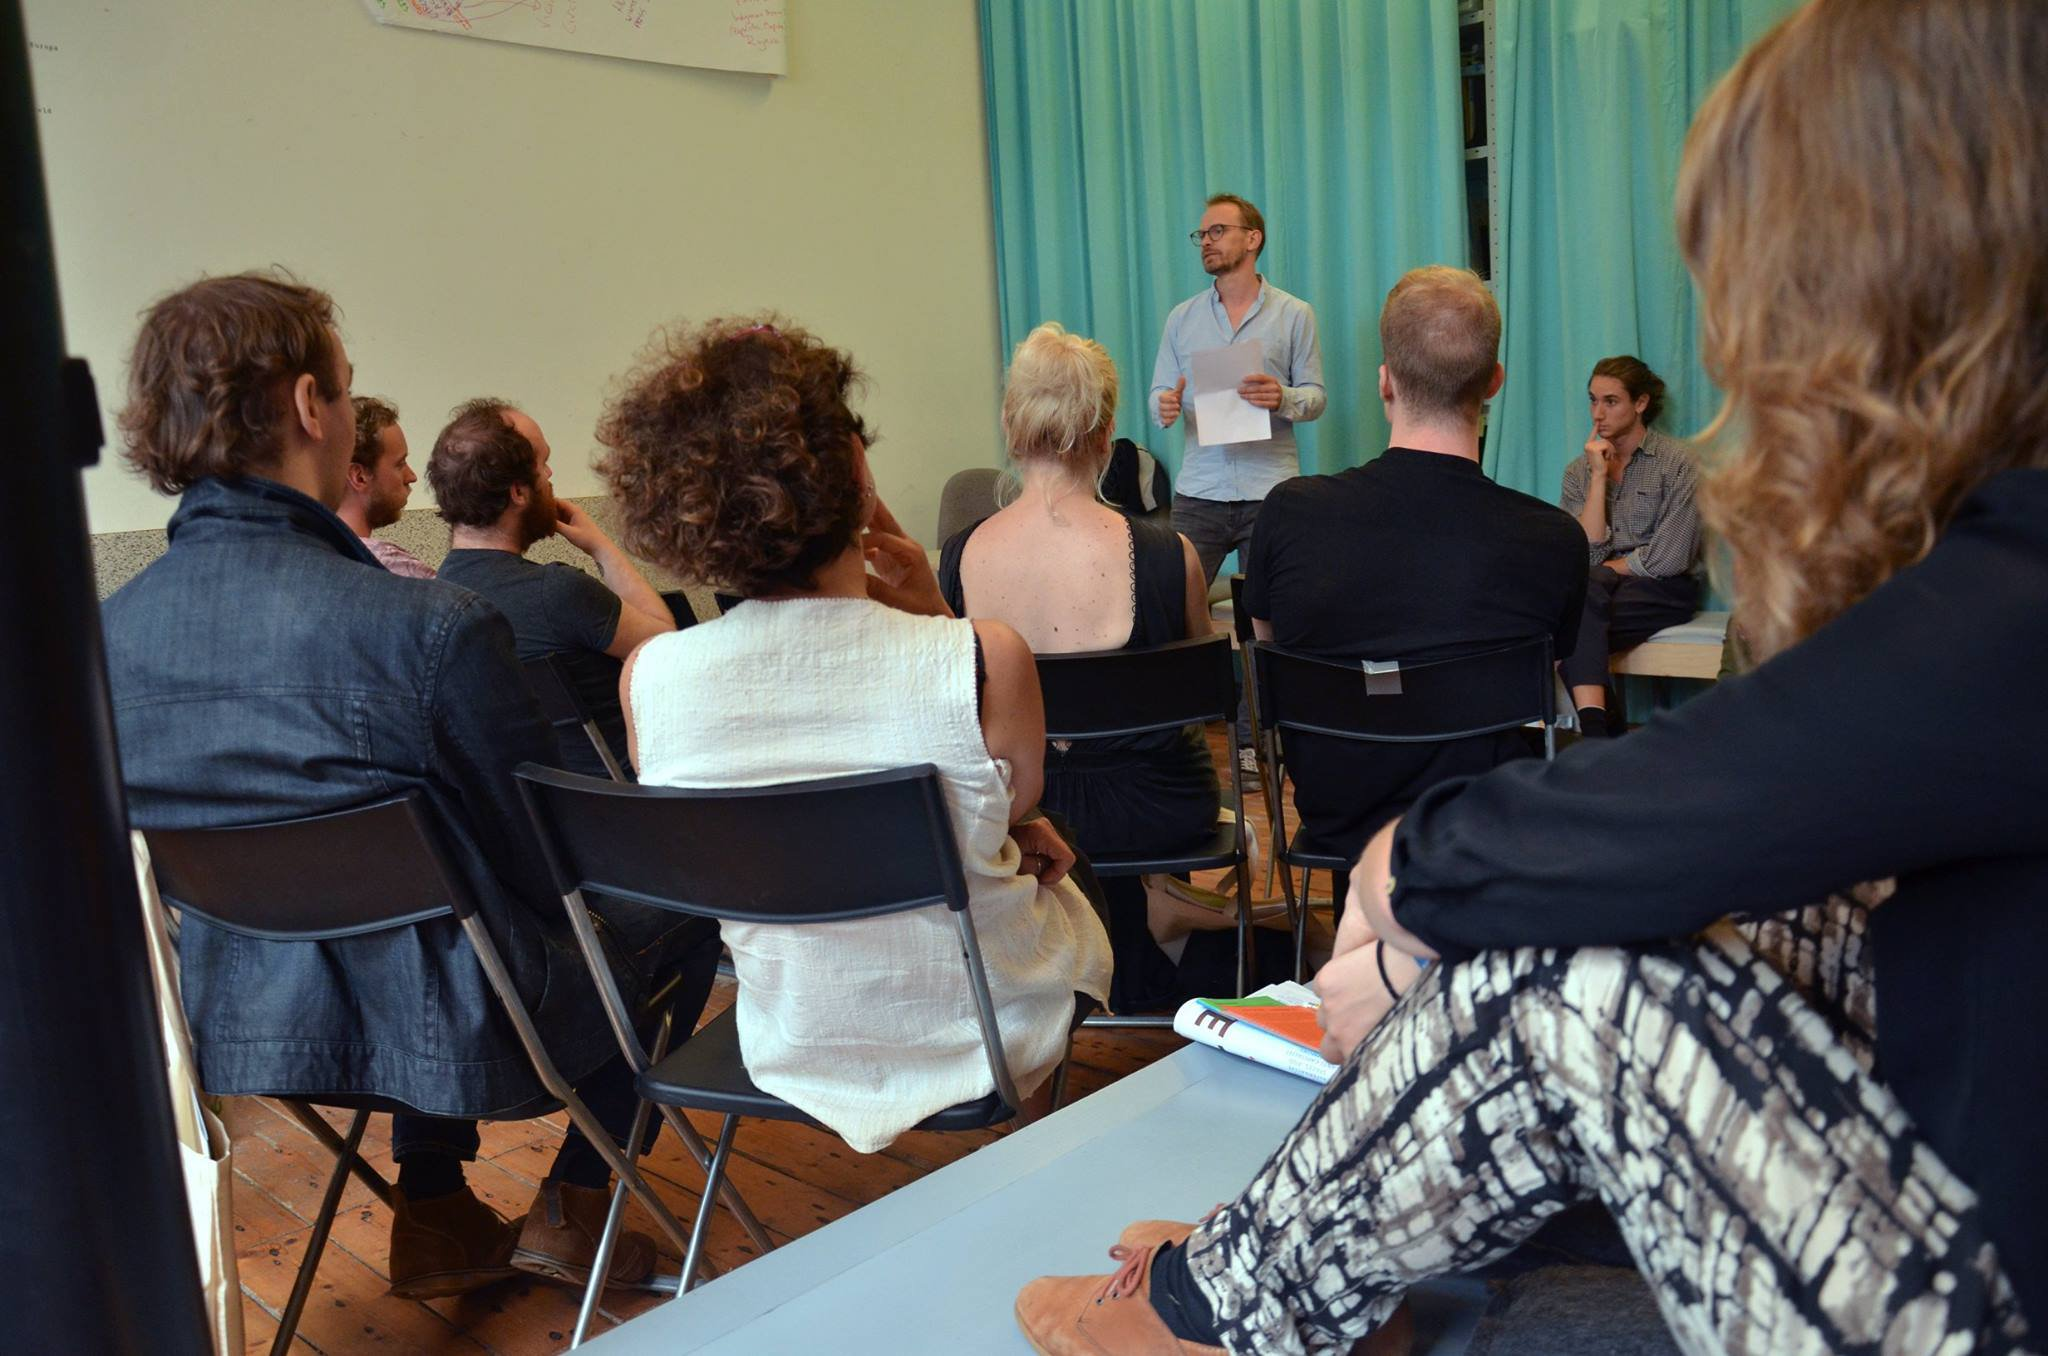 Lecture by Merijn Oudenampsen, photo by Whitney Stark (September 2016)